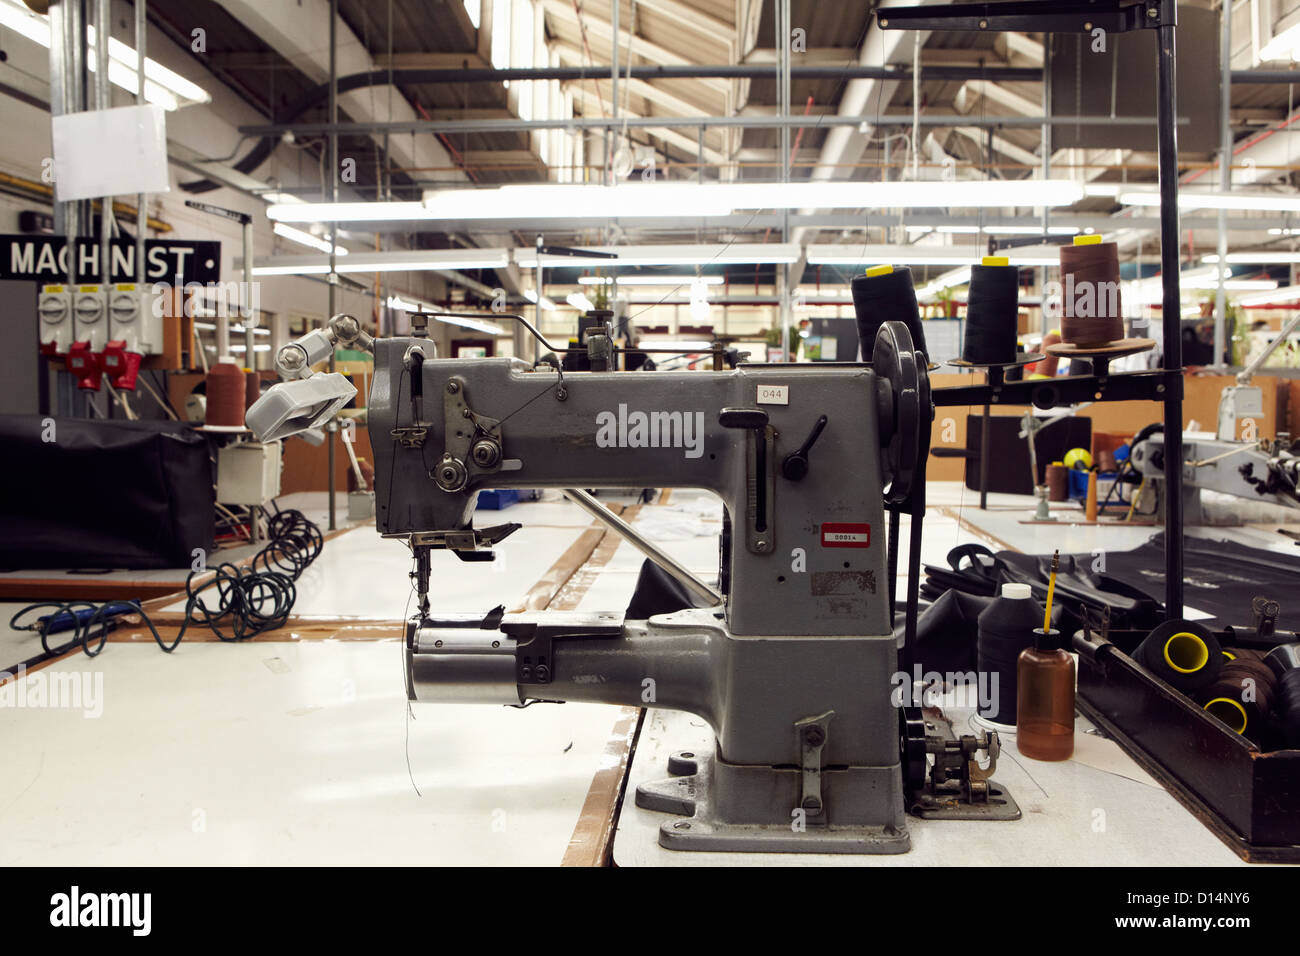 Sewing machine in clothing factory - Stock Image